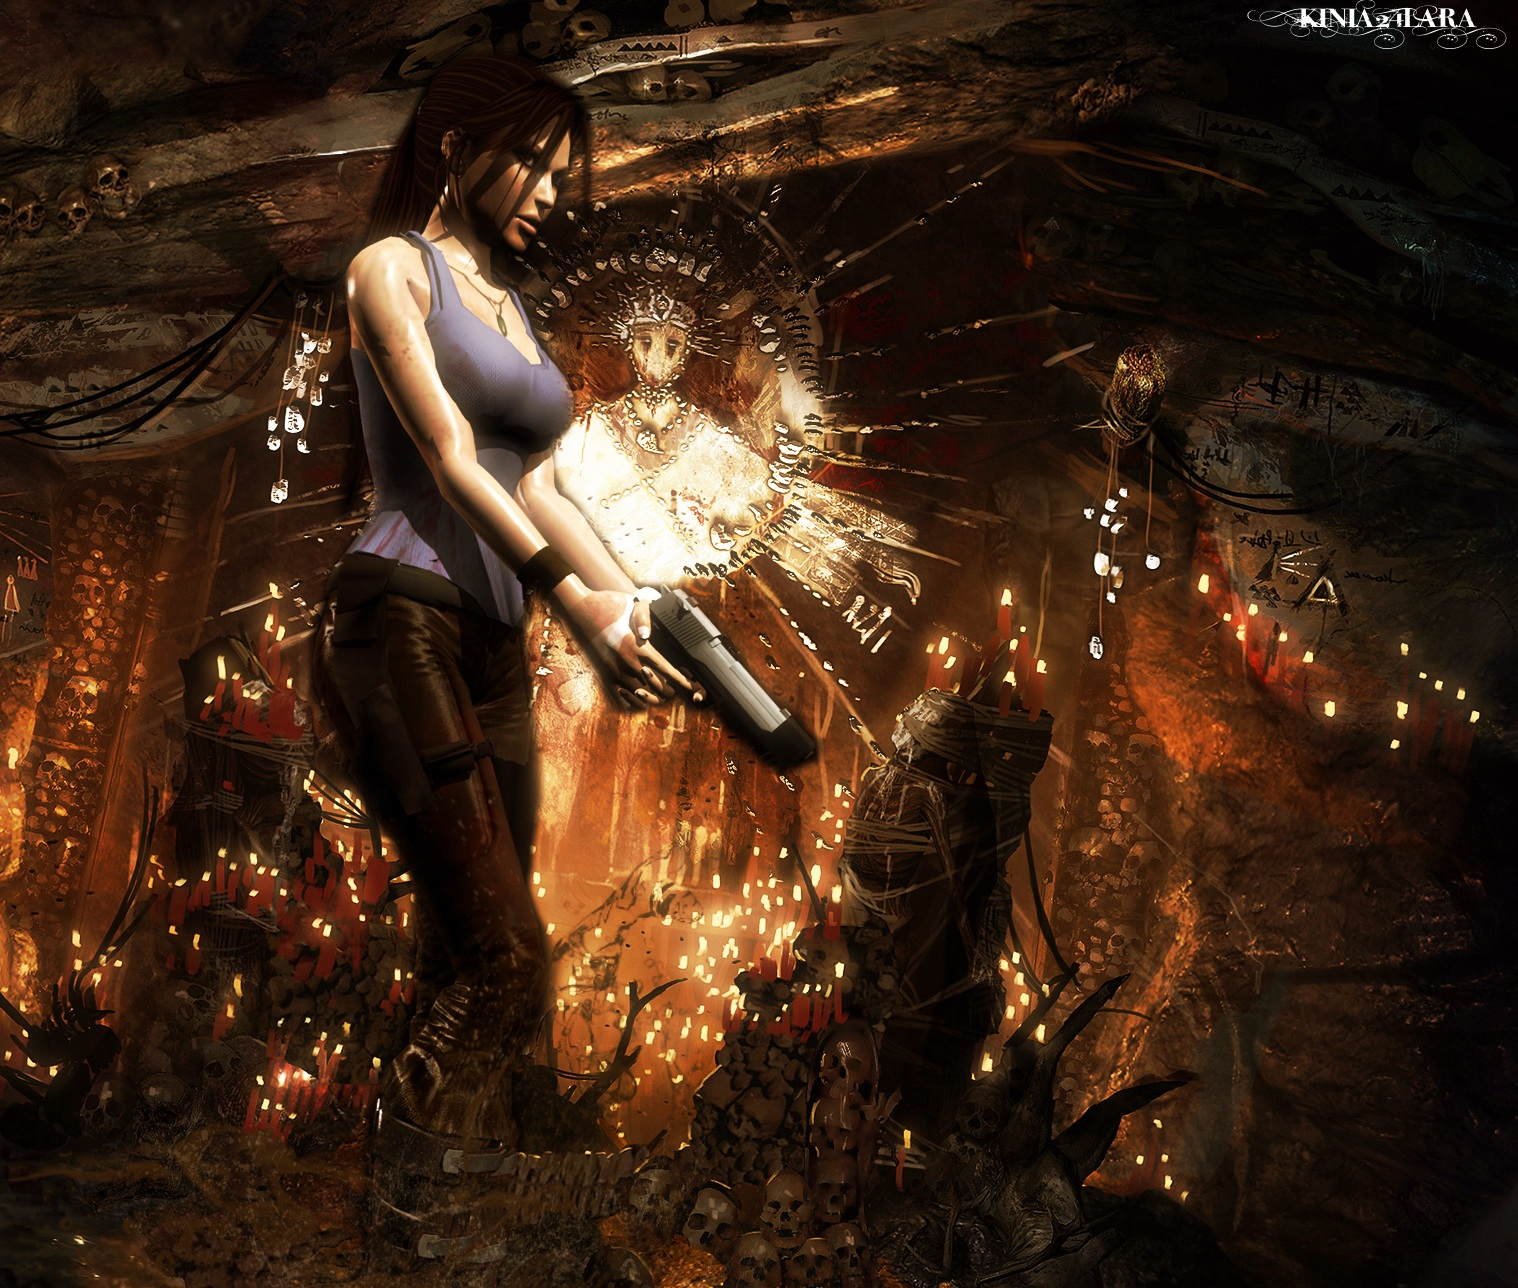 Tomb Rider Wallpaper: Tomb Raider 9 Render... By Kinia24Lara On DeviantArt